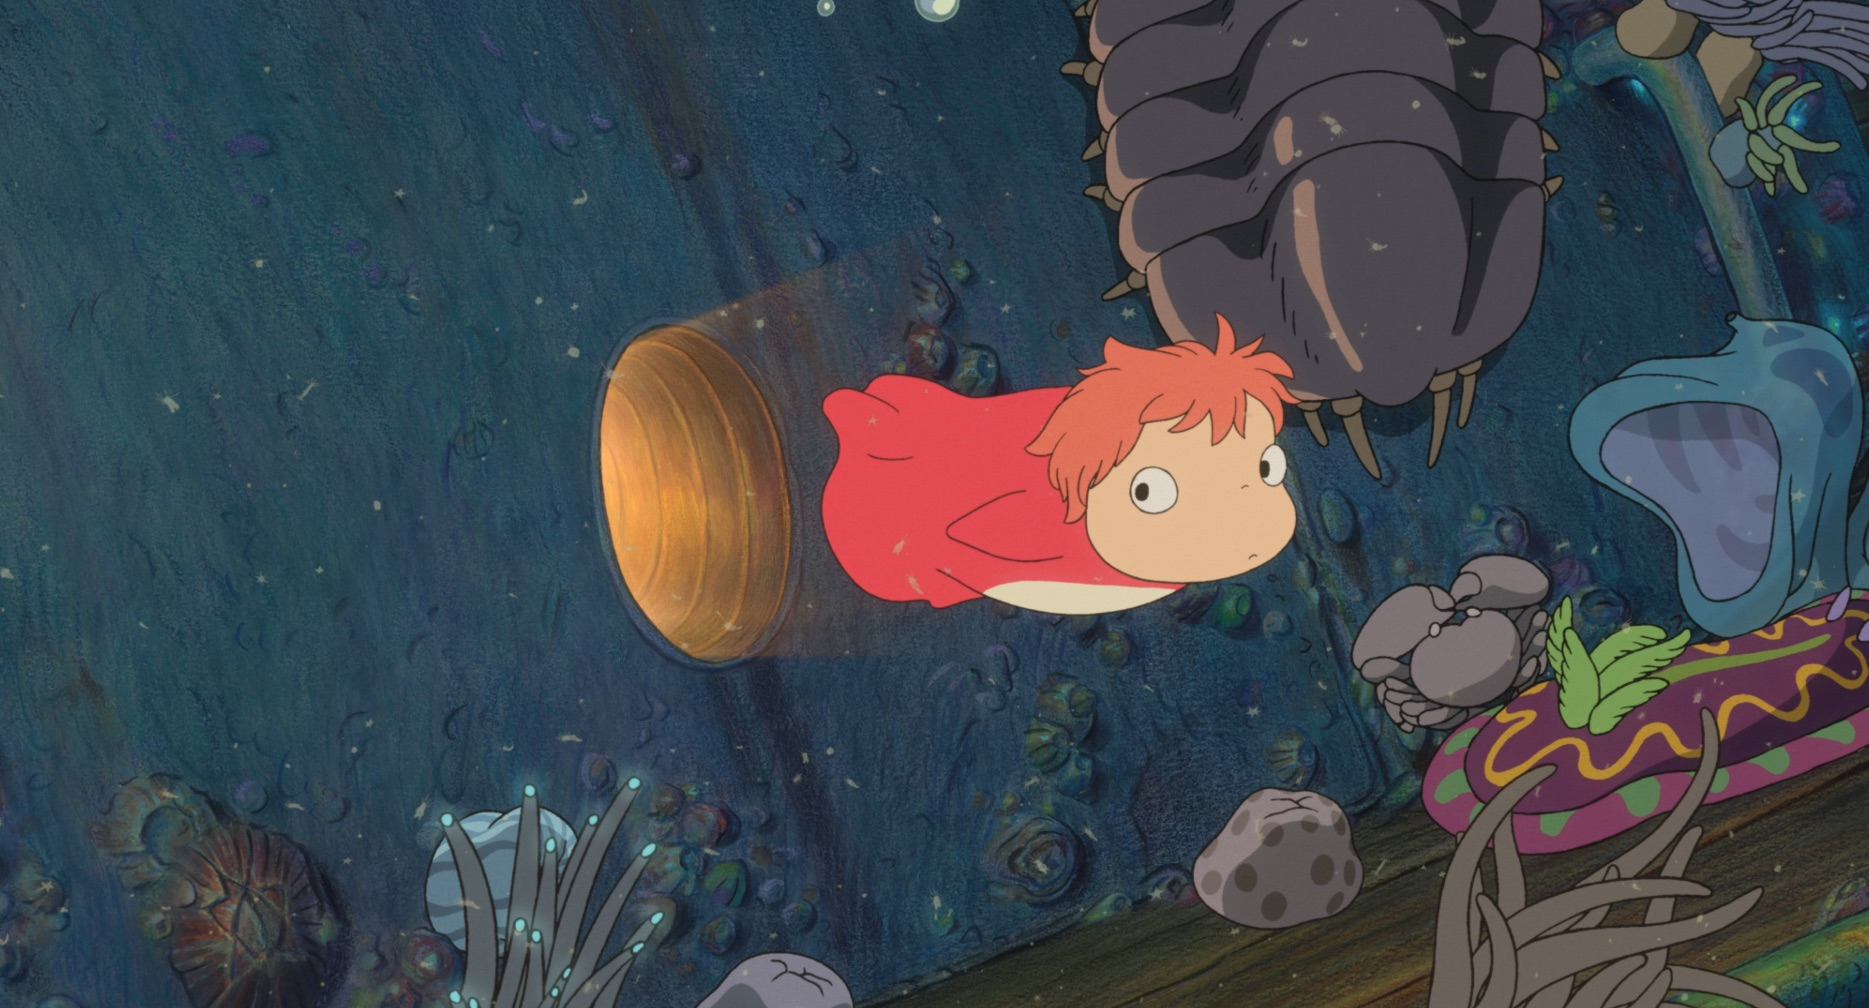 ponyo swims out of her ship